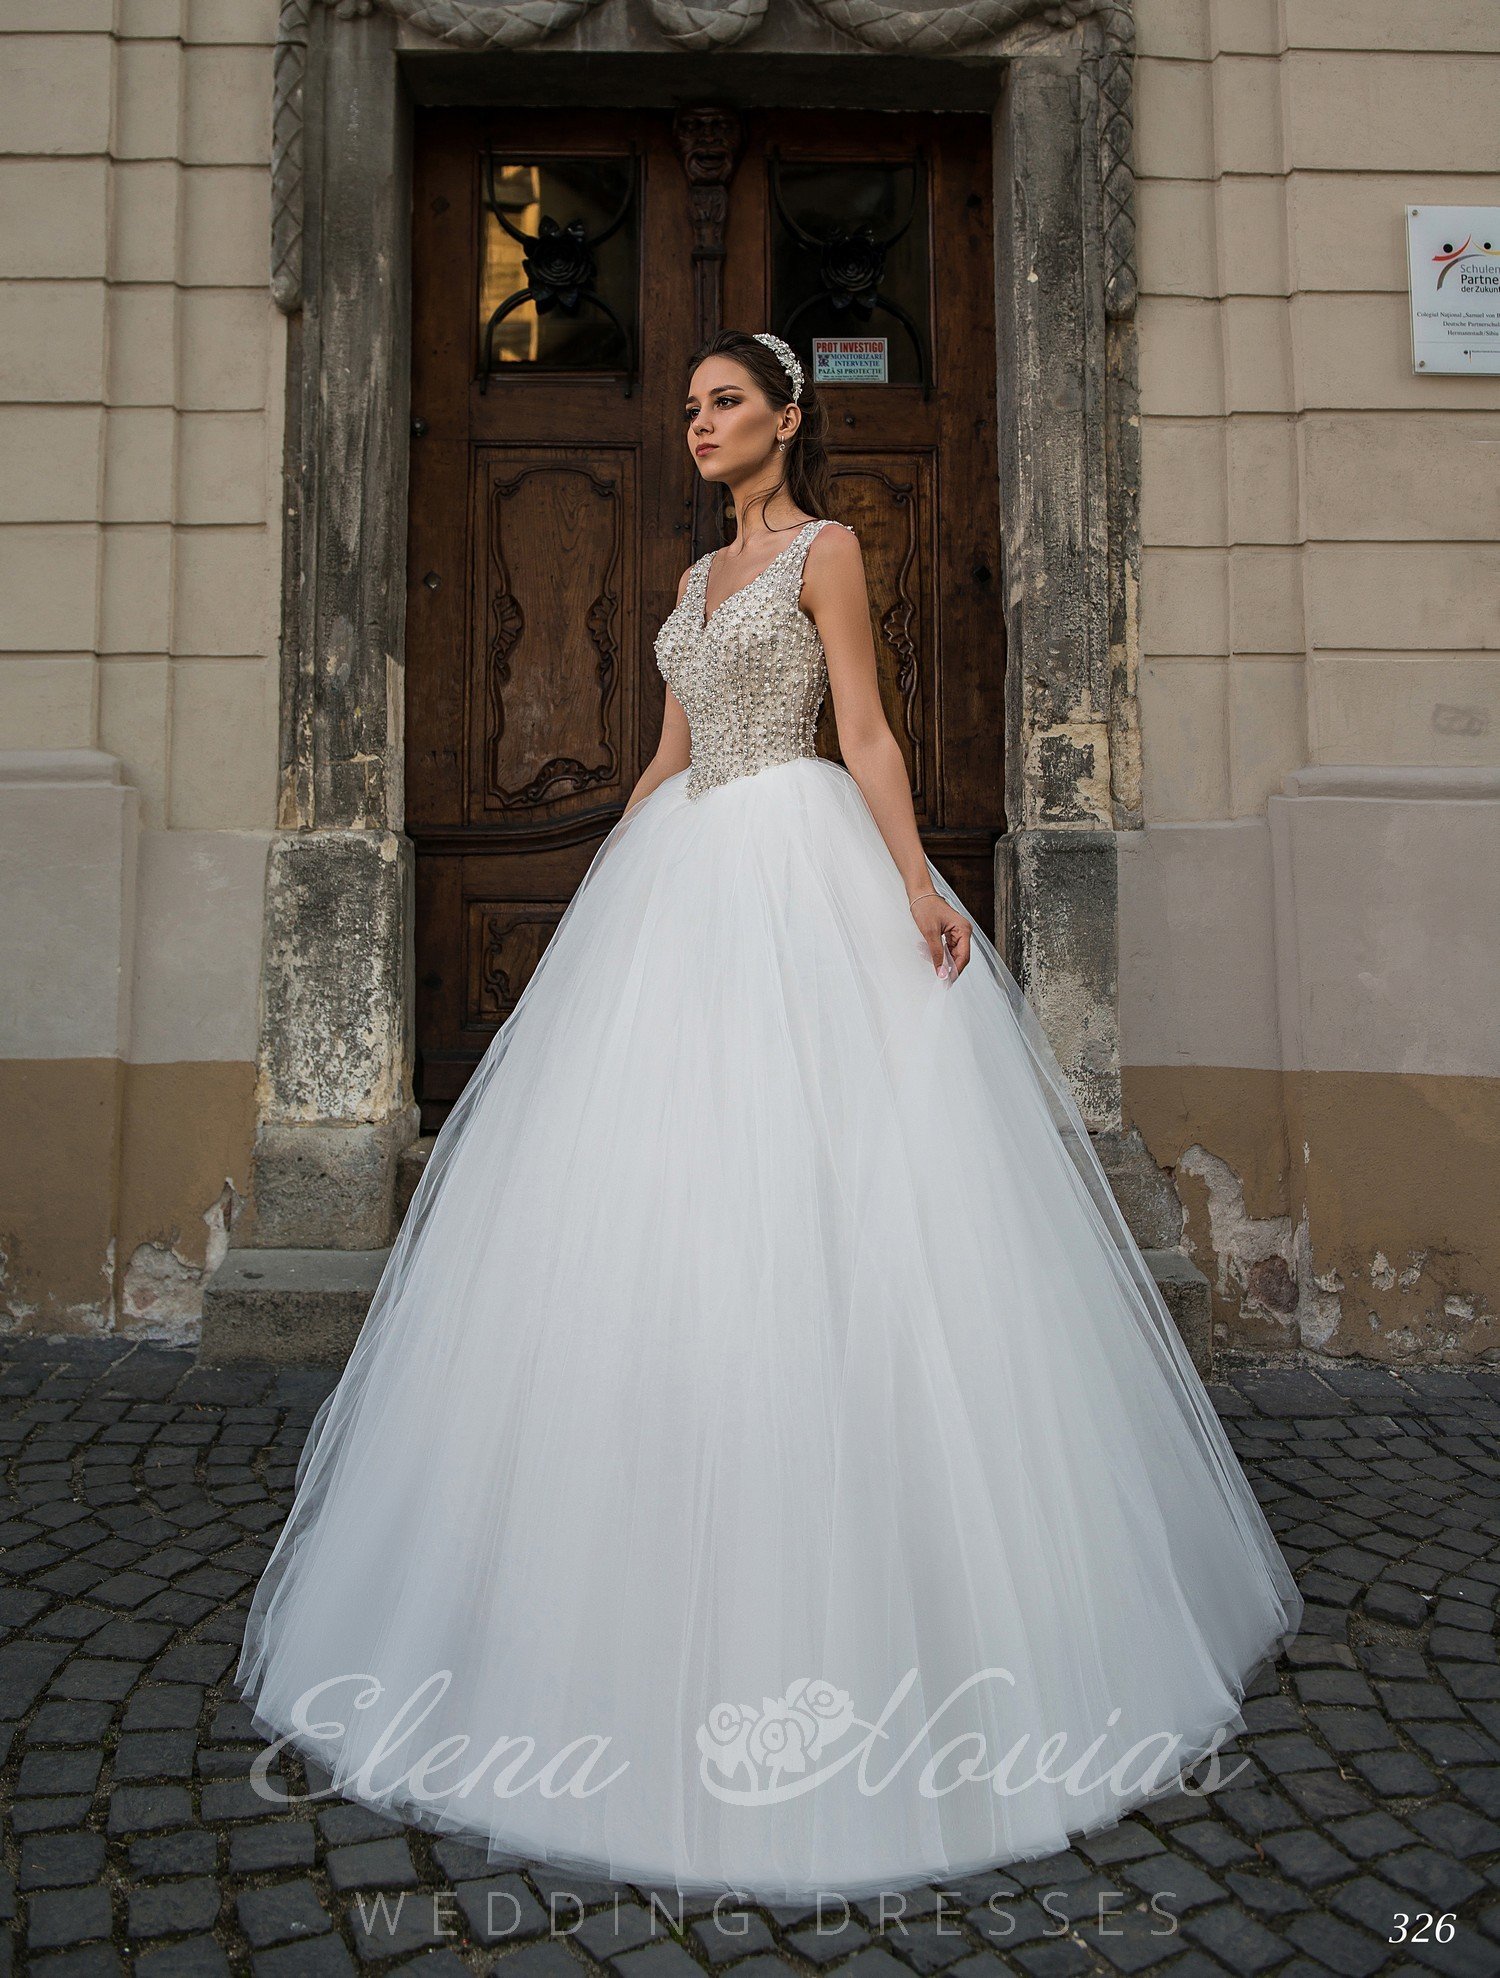 Lush embroidered wedding dress with V-neck